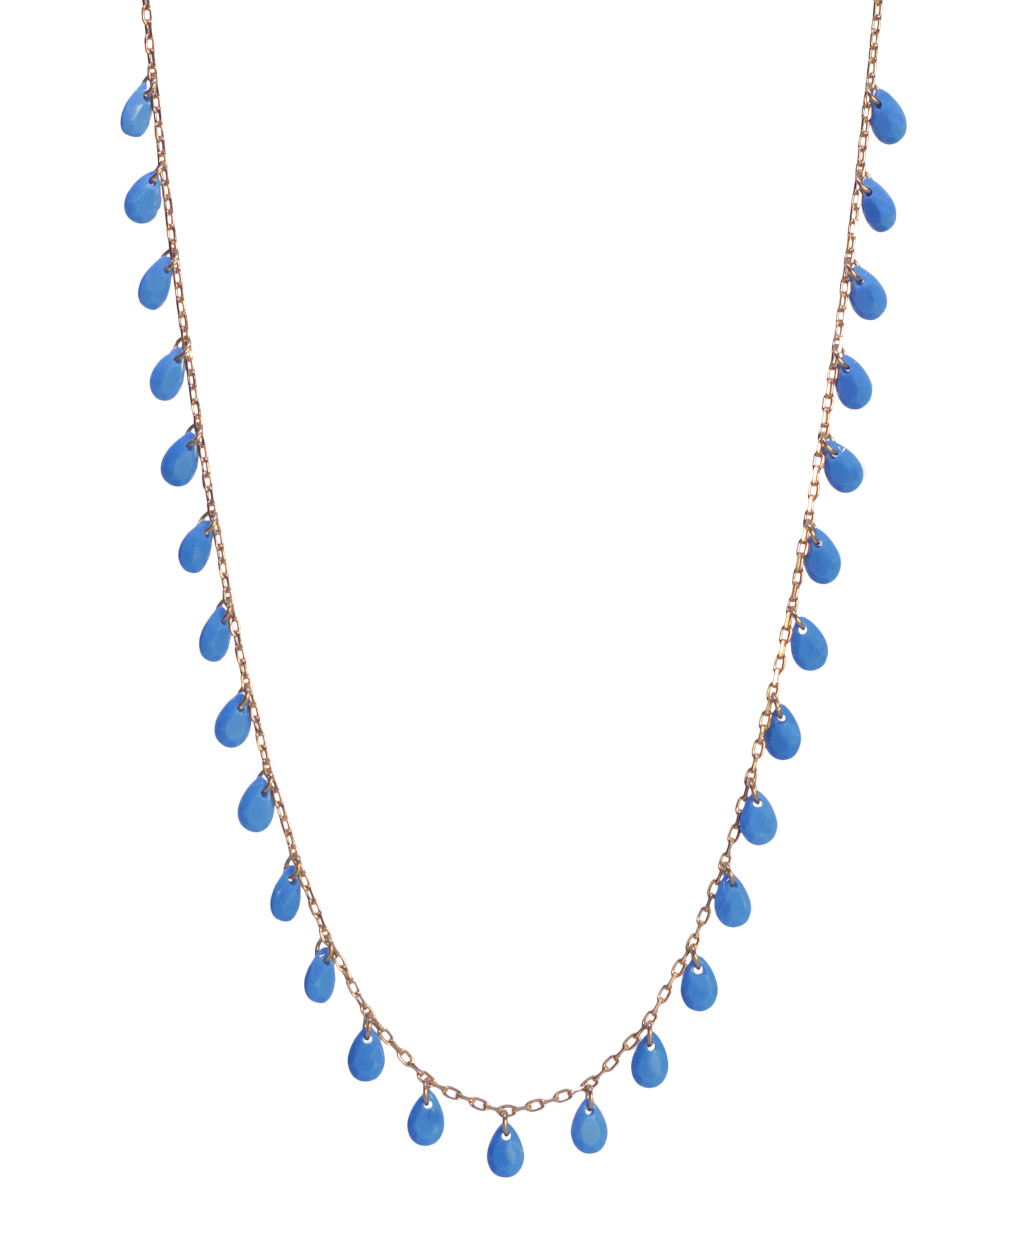 Turquoise Zircon Silver Necklace